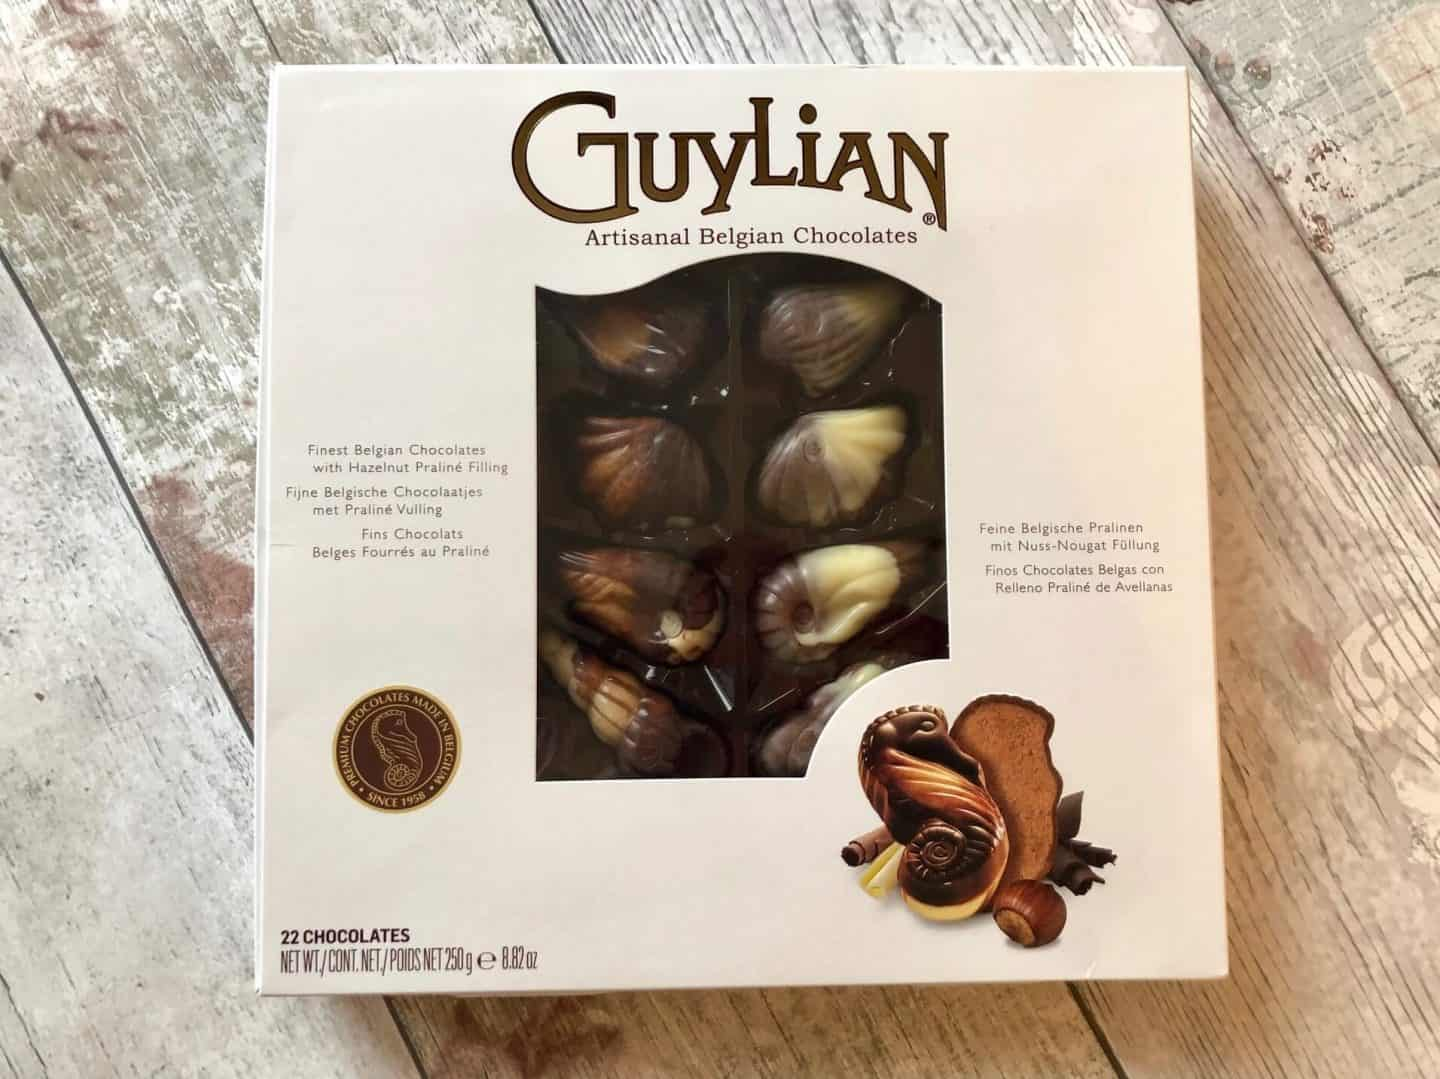 Guylian seashell chocolates